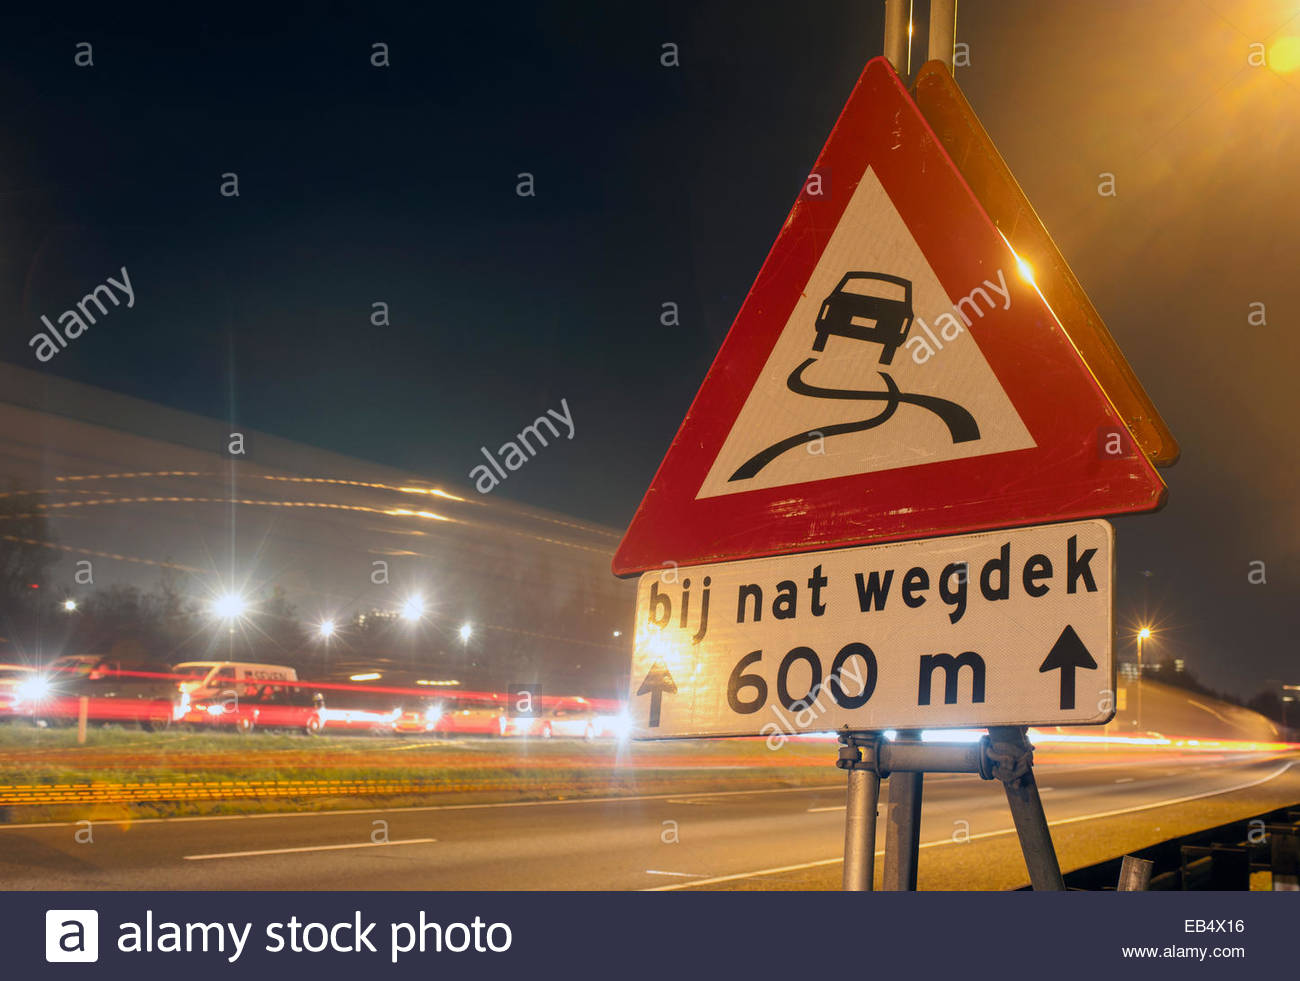 Amsterdam The Netherlands slippery when wet sign at night. Road safety. - Stock Image